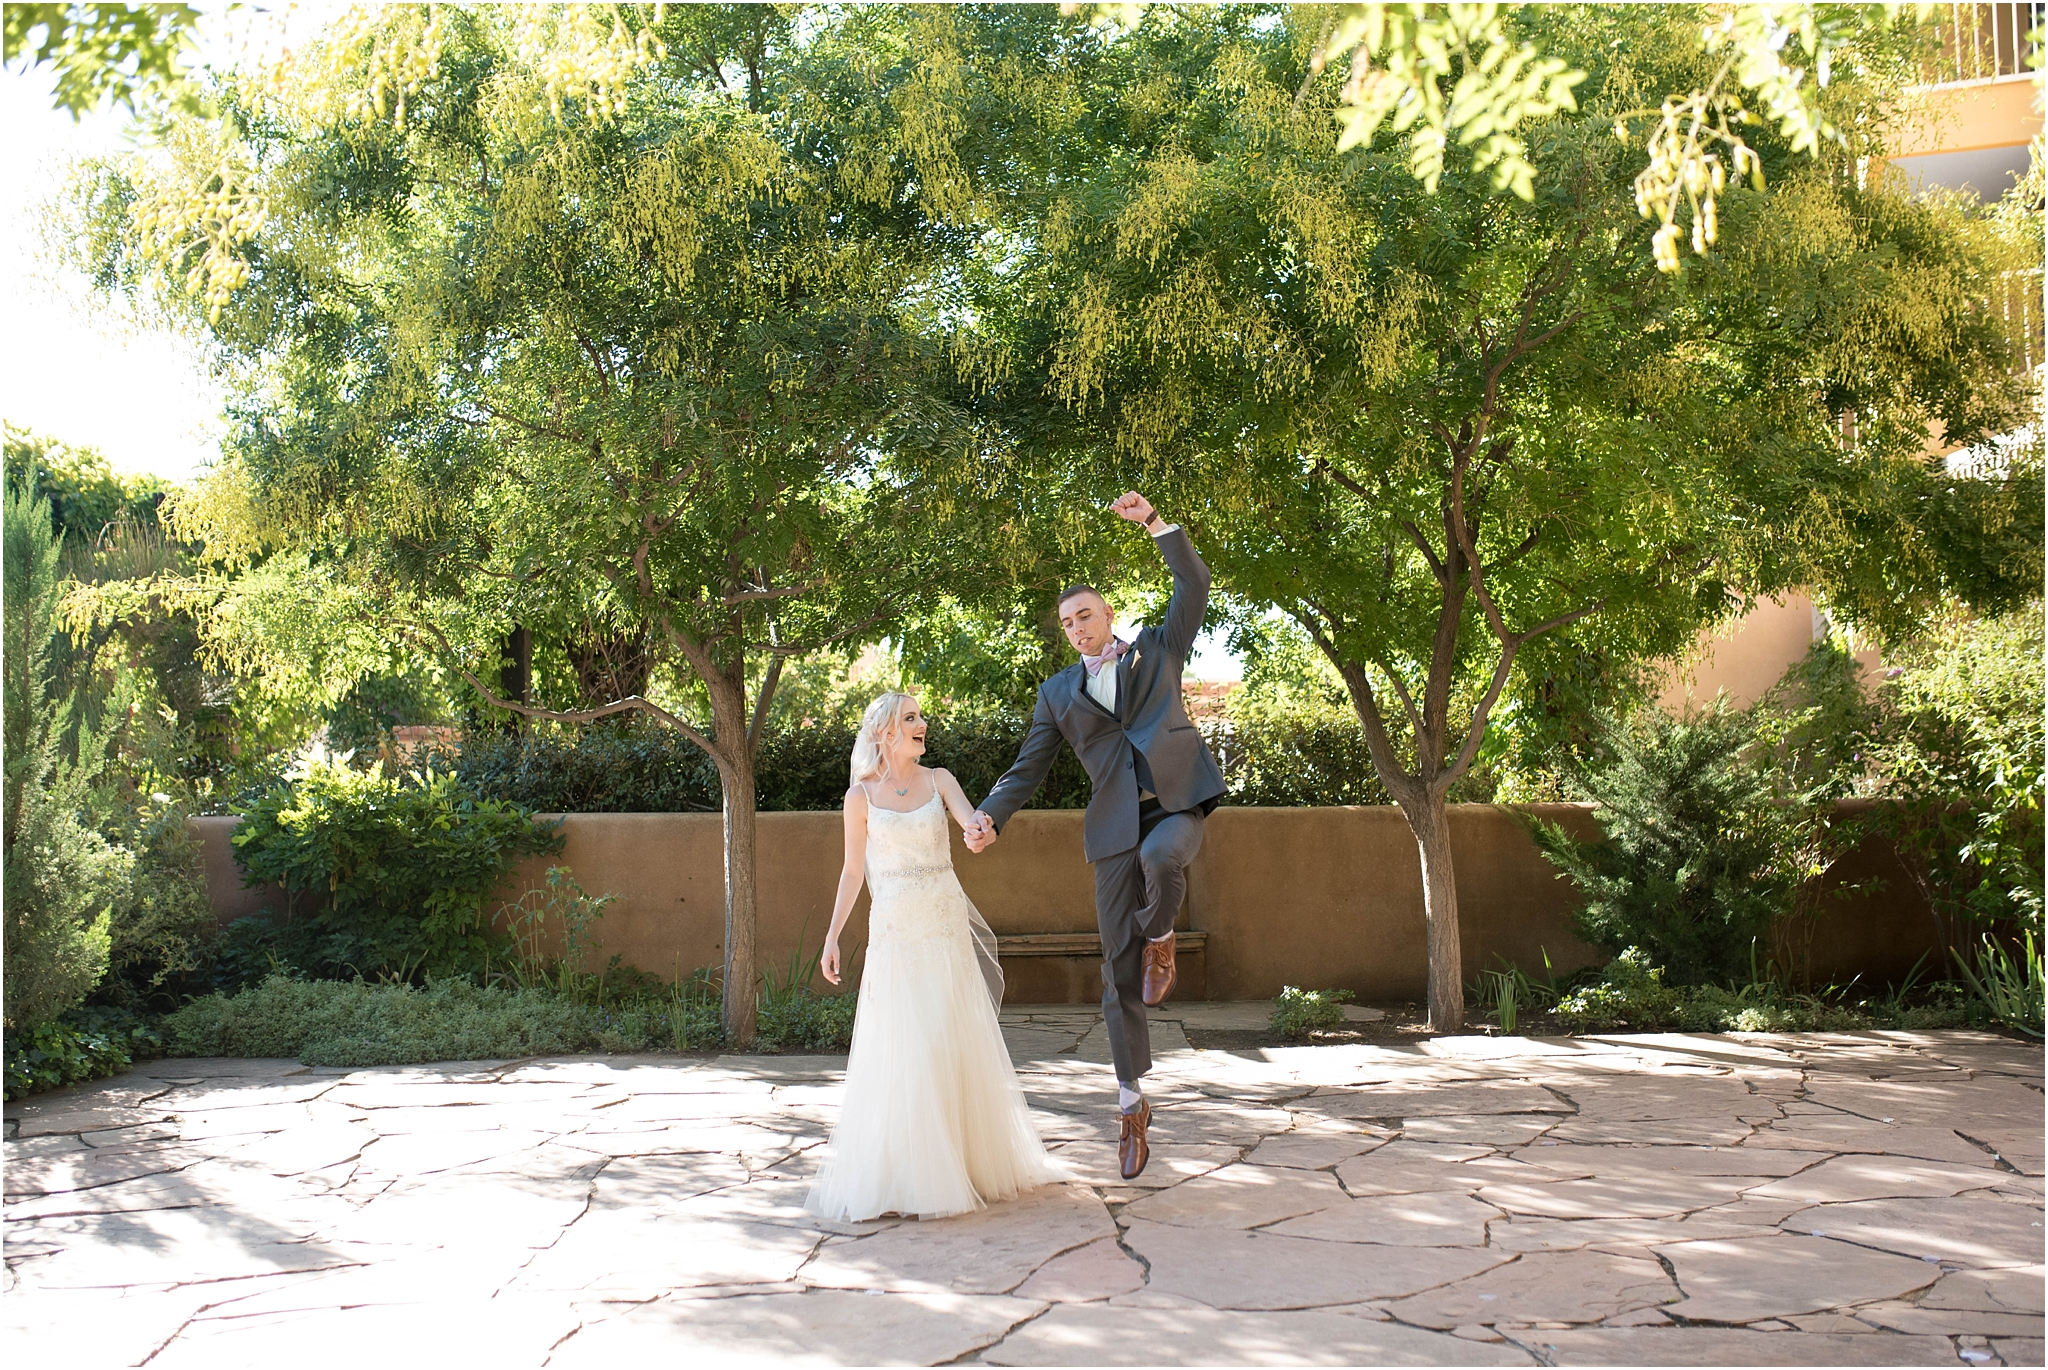 kayla kitts photography - new mexico wedding photographer - albuquerque botanic gardens - hotel albuquerque-casa de suenos_0231.jpg